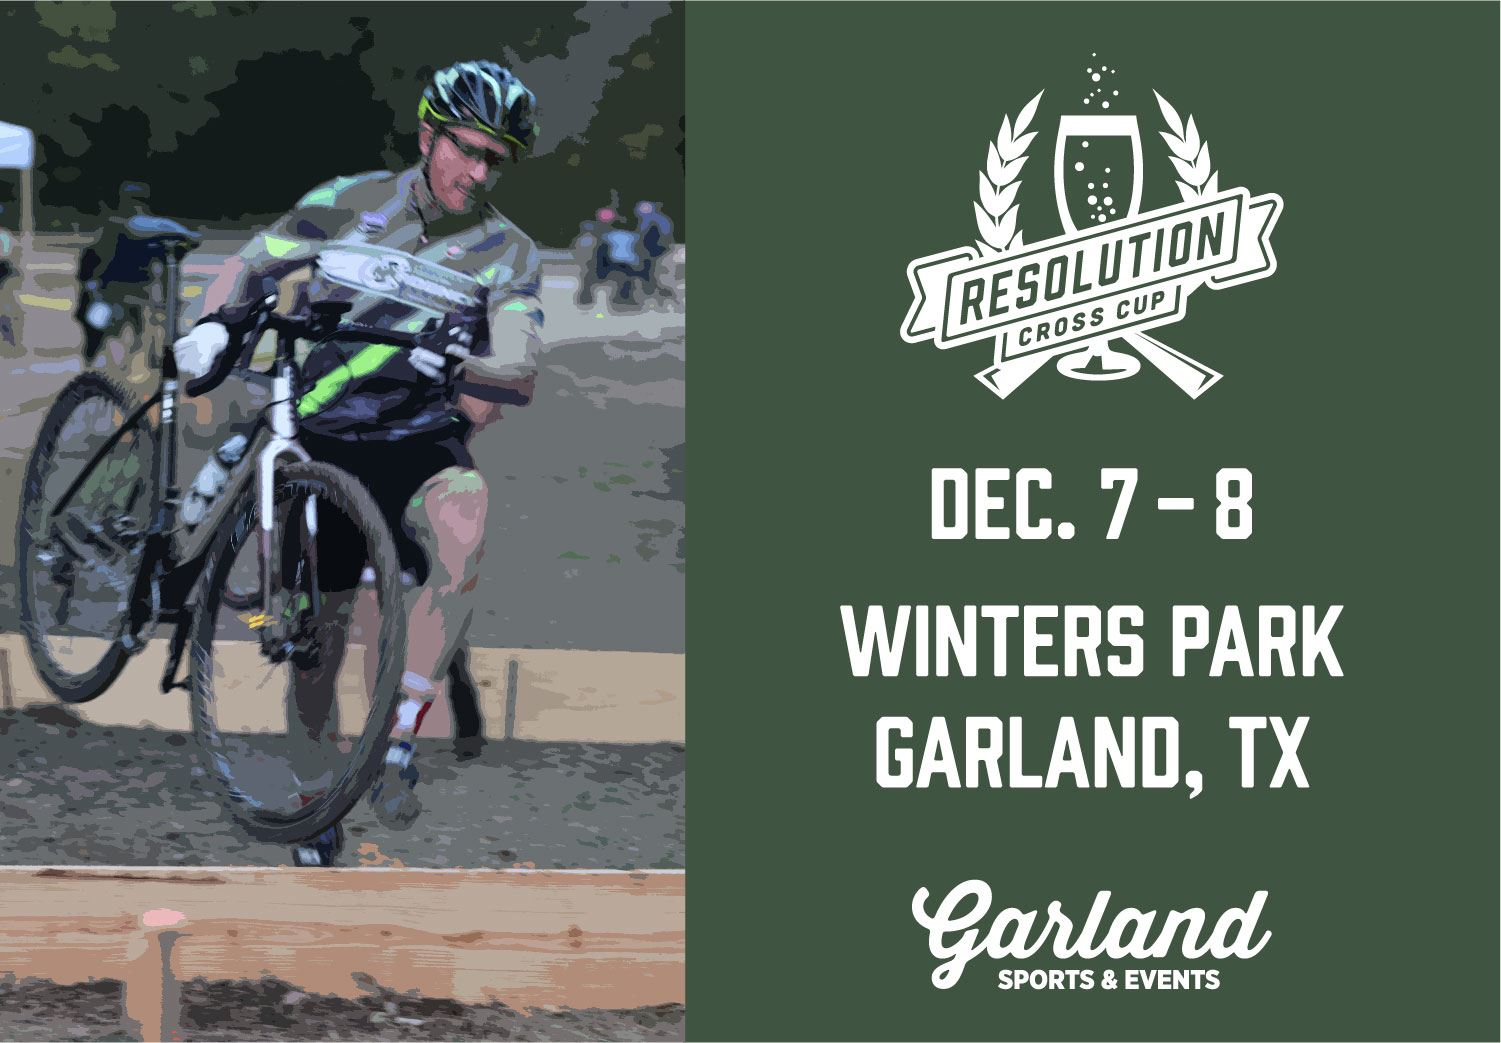 Cyclocross&#39 Resolution Cross Cup comes to Winters Park Dec. 7 and 8